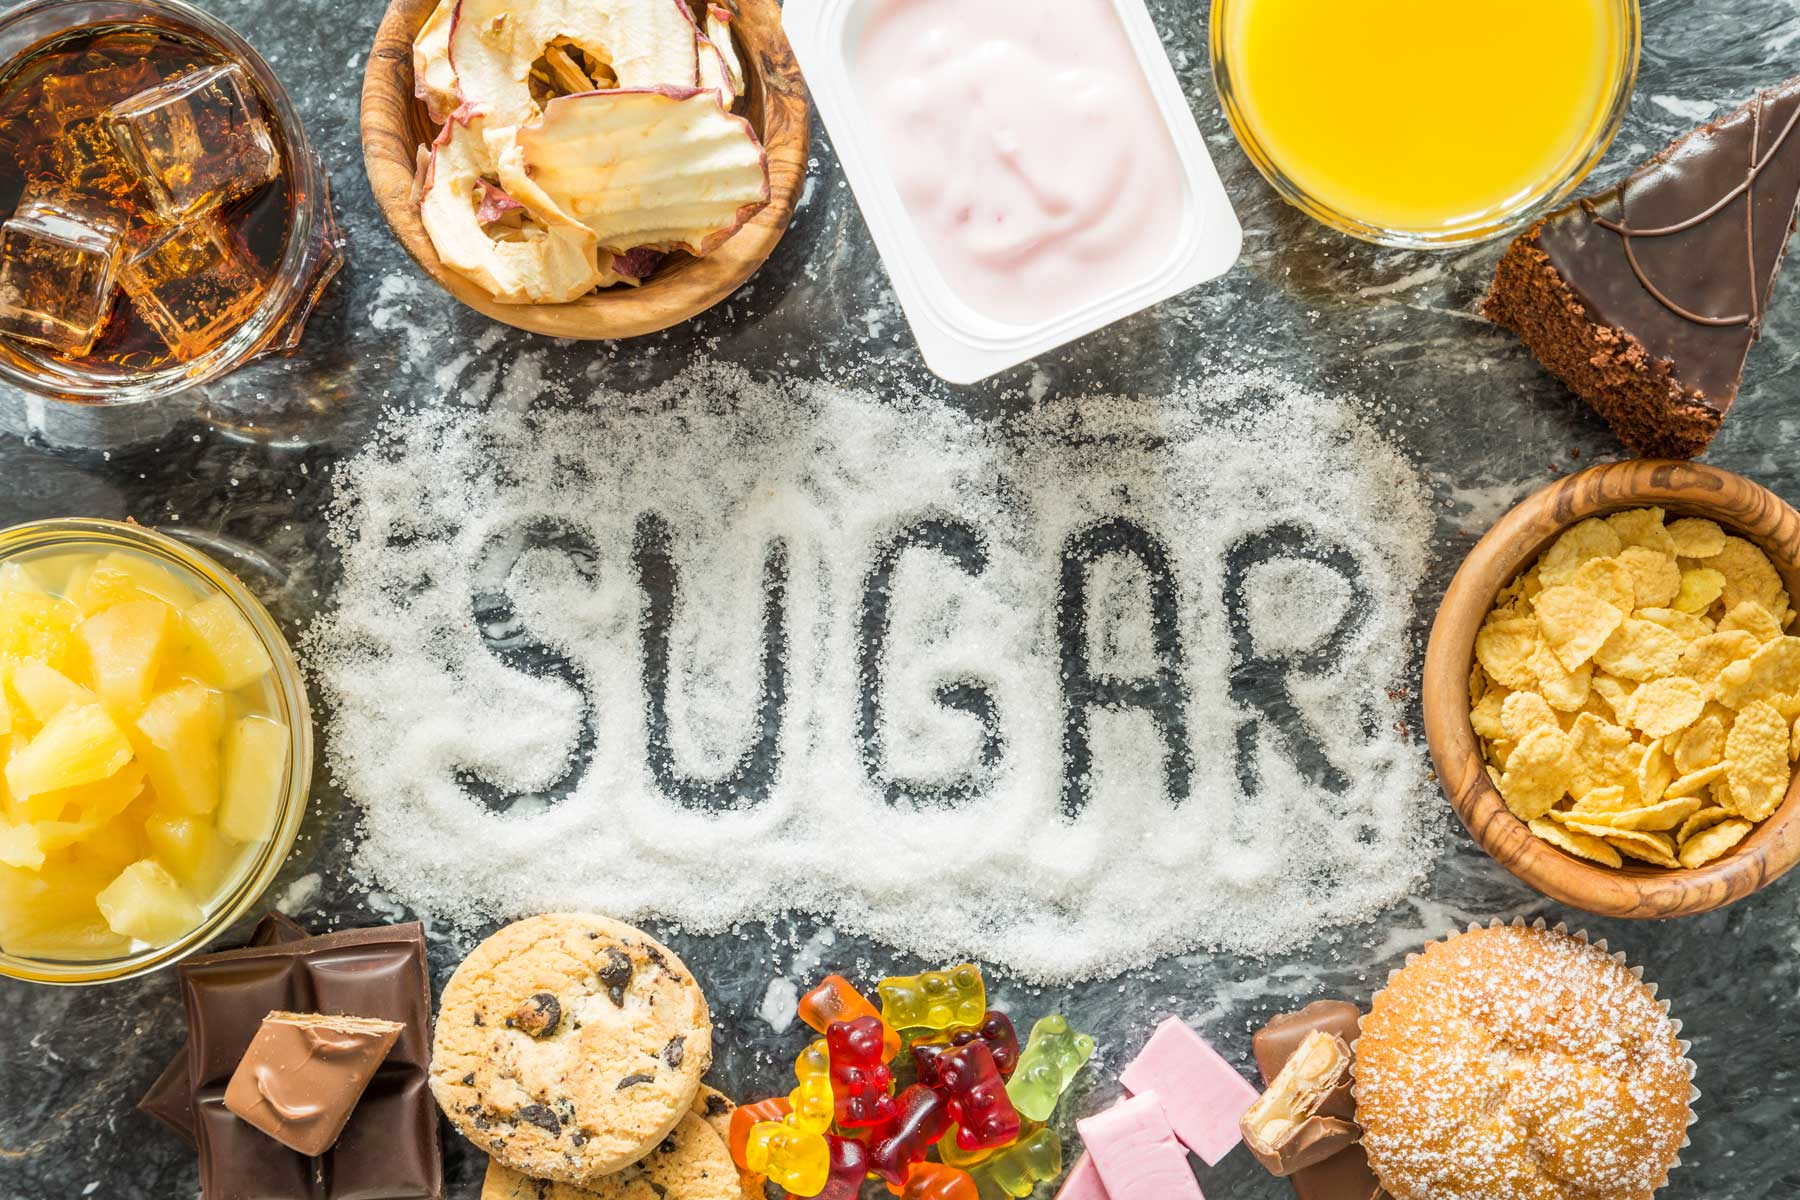 Which Sugar-Based Foods Are Useful and Which Ones Cause Weight Gain